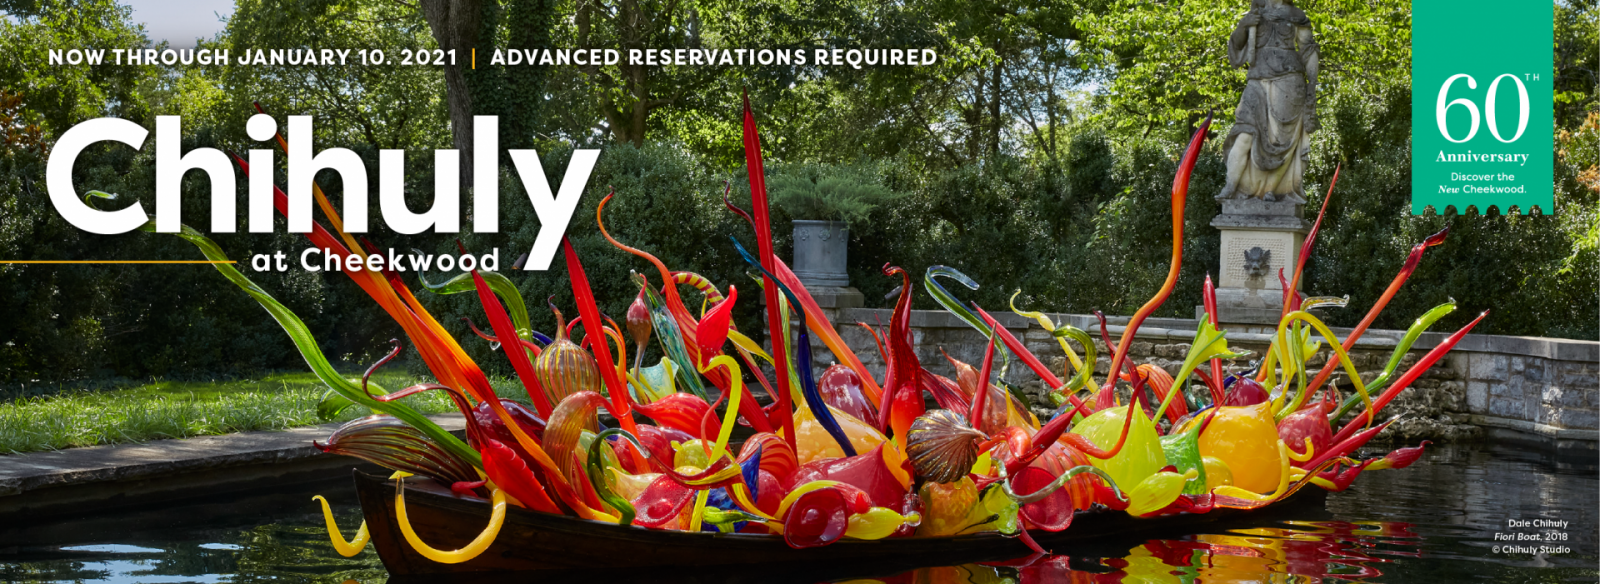 Chihuly at Cheekwood July 18 - January 10